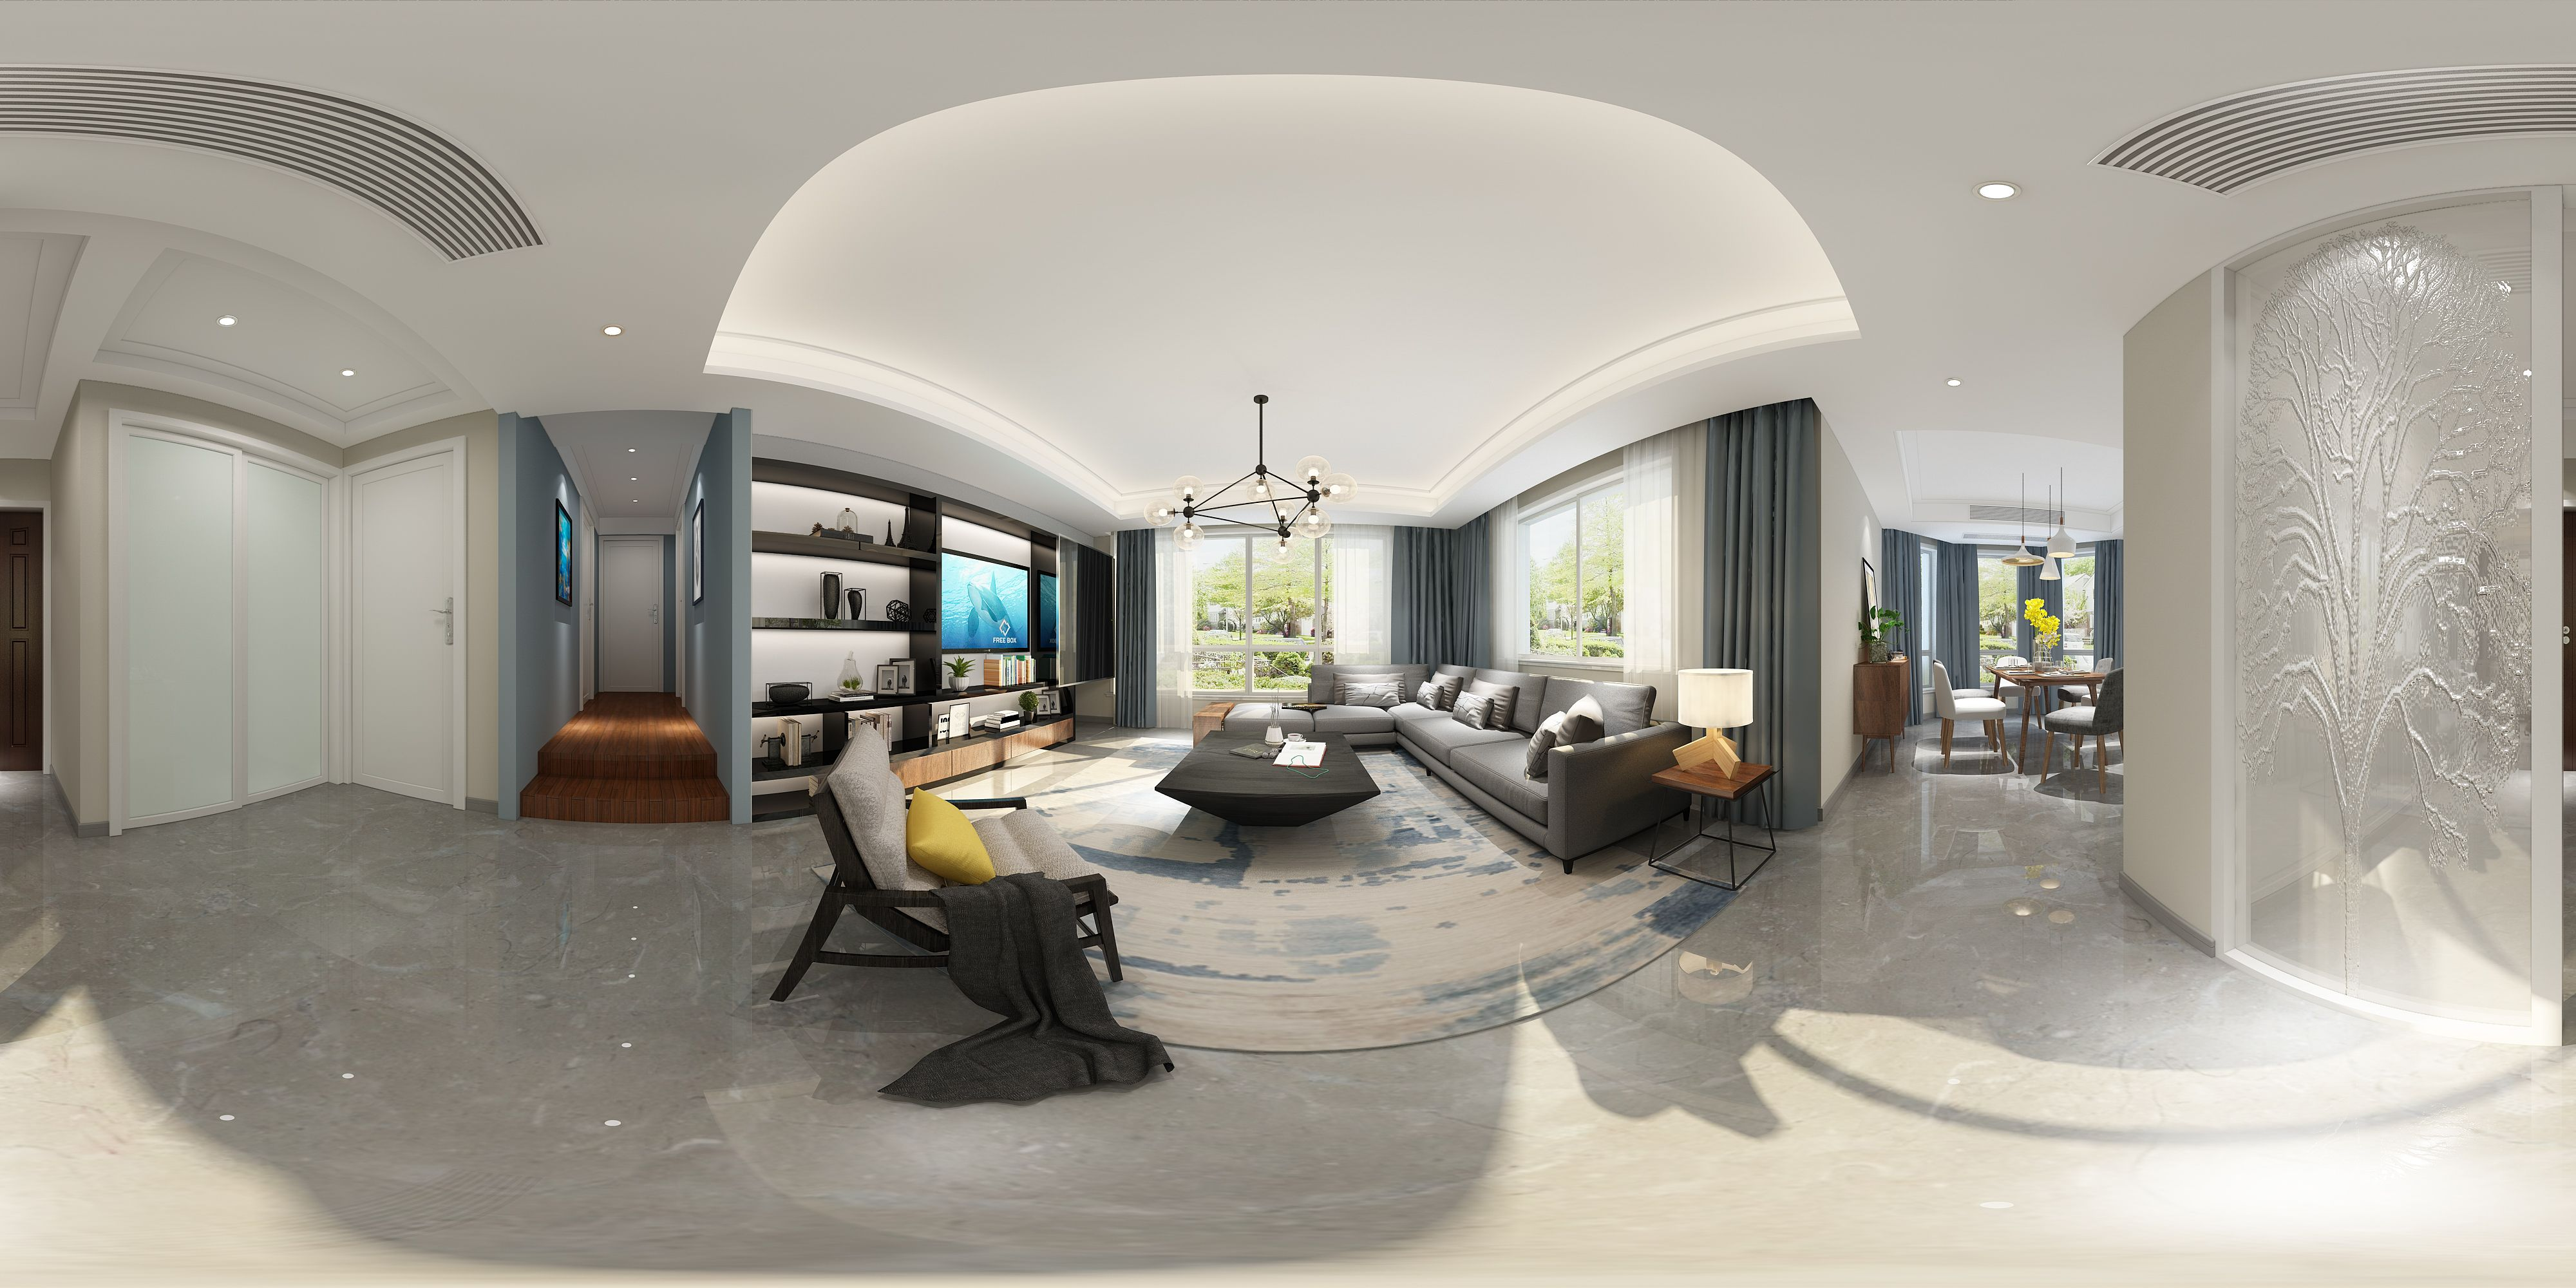 Google Street View Trusted Photographer Professional Virtual Tour Interesting Virtual Living Room Designer Free Review